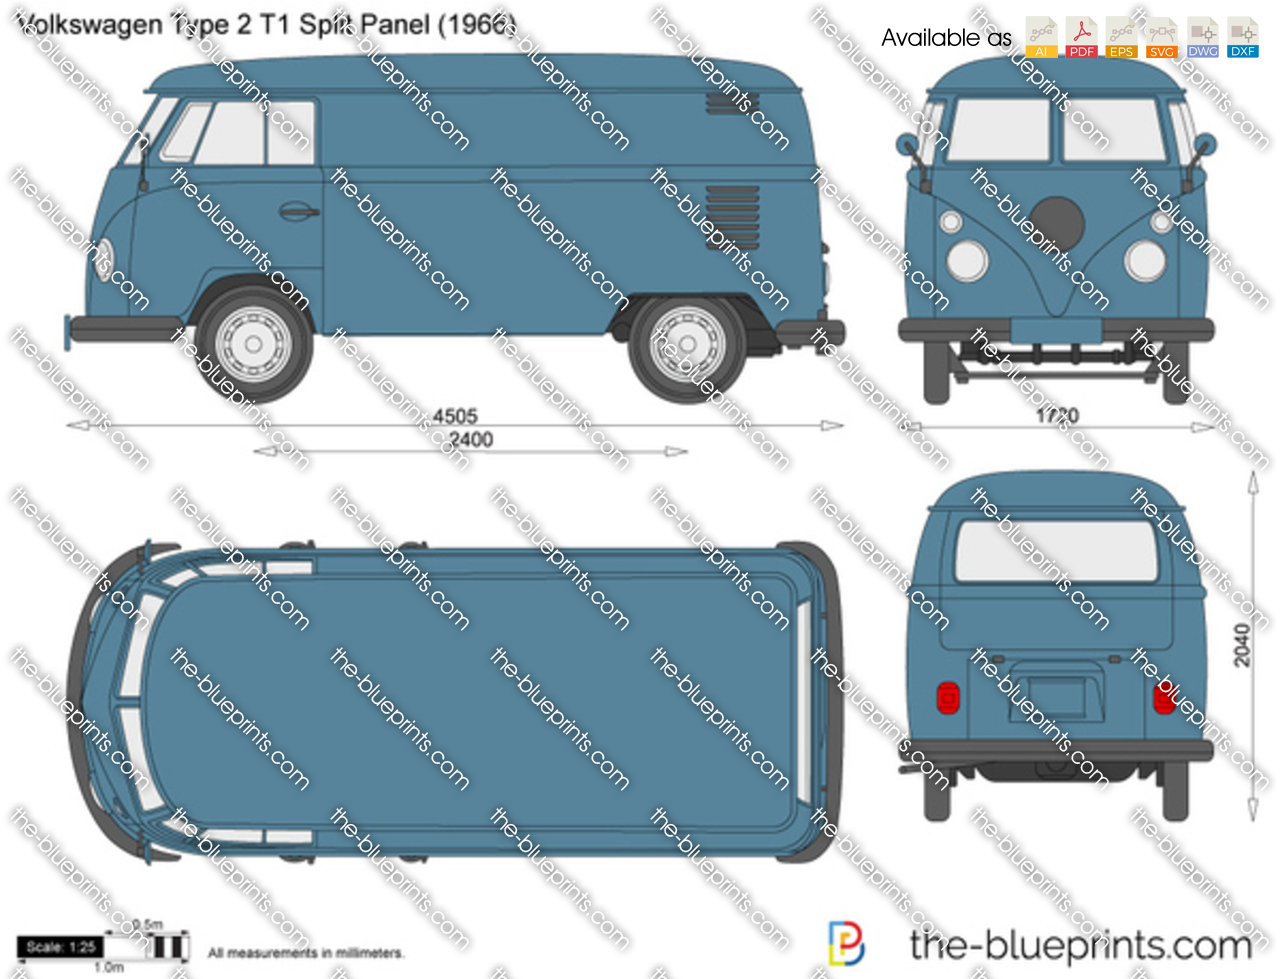 Volkswagen Type 2 T1 Split Panel 1956